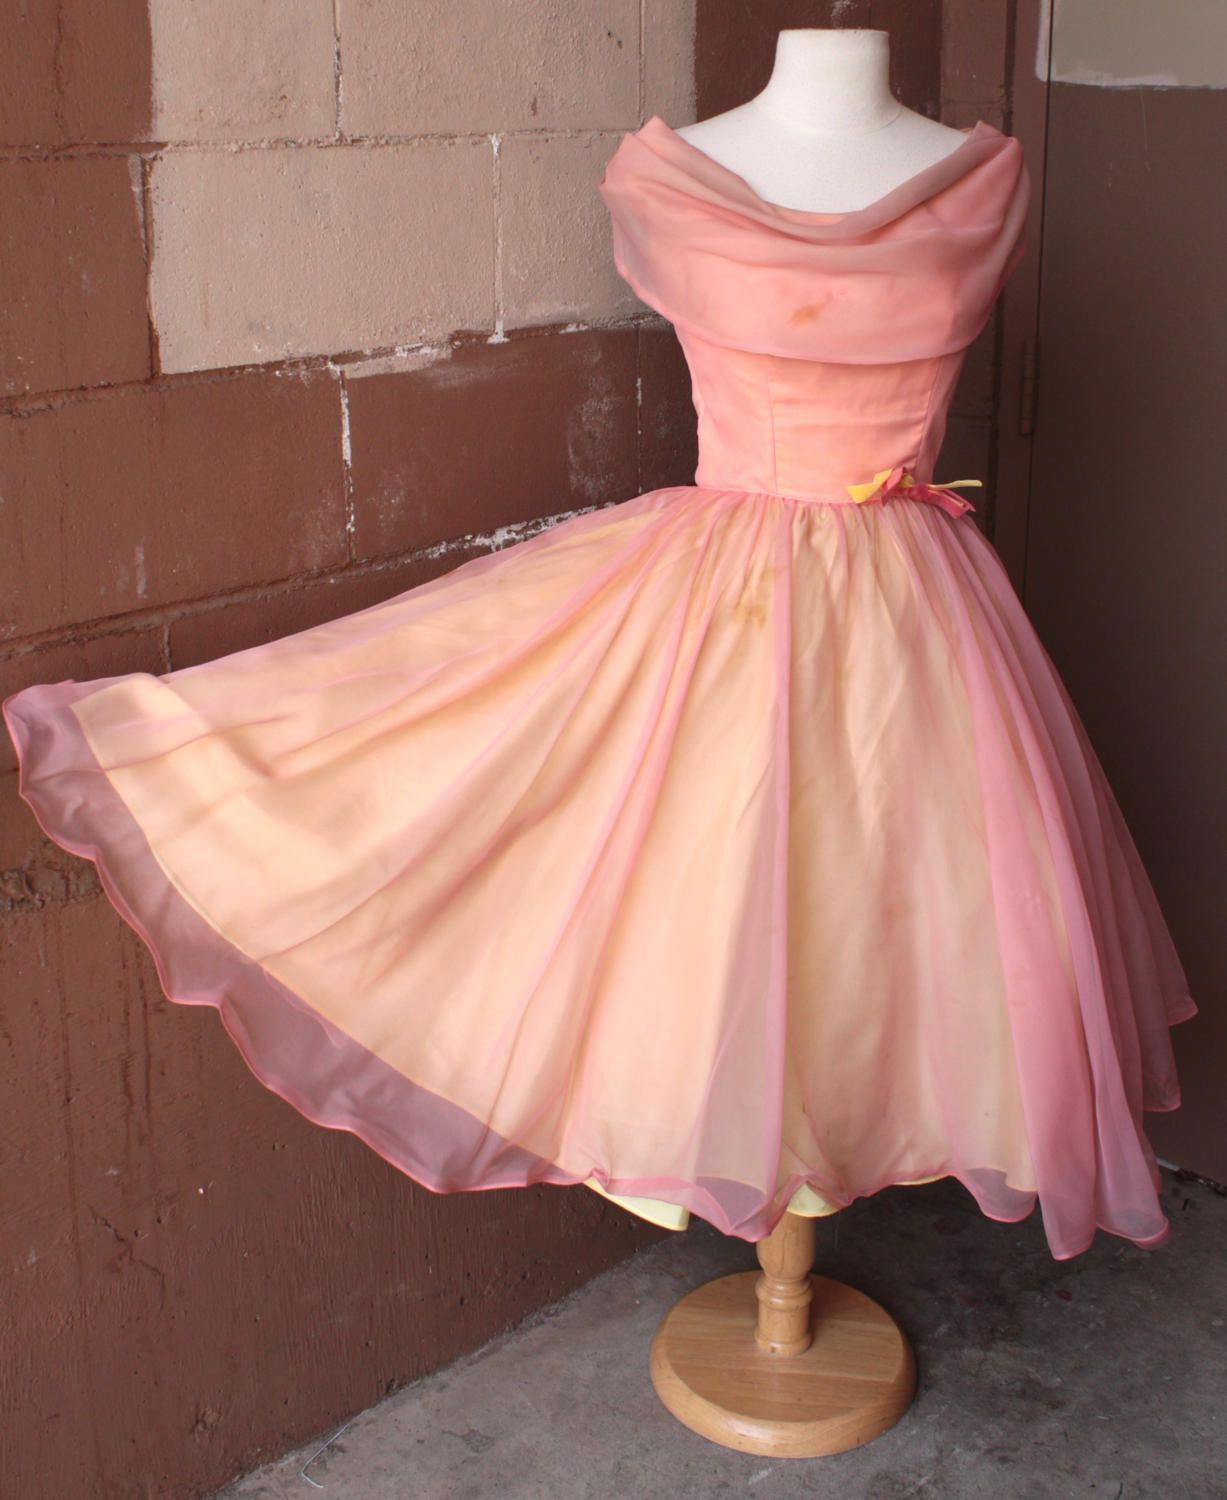 Vintage 1950 S Dress 50s 60s Pink And Yellow Chiffon Party Prom Dress Cupcake Dress With Draped Coll Everyday Dresses Fancy Dresses Vintage 1950s Dresses [ 1500 x 1227 Pixel ]